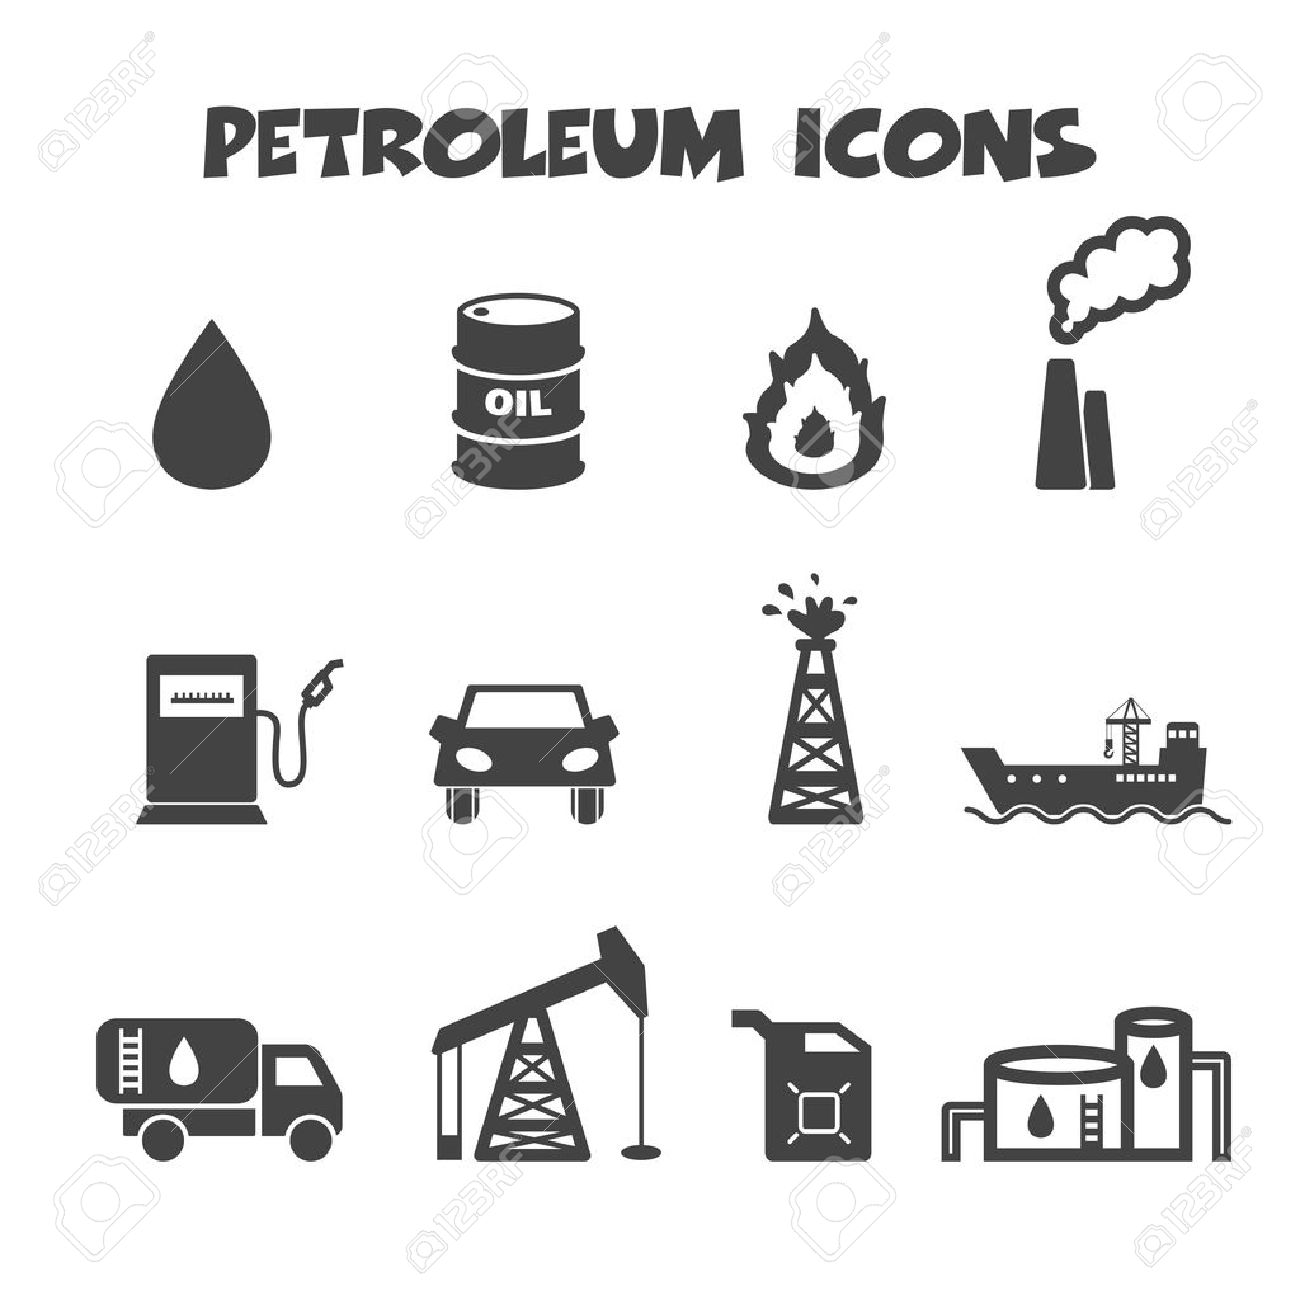 8570 crude oil stock vector illustration and royalty free crude petroleum icons mono vector symbols biocorpaavc Gallery